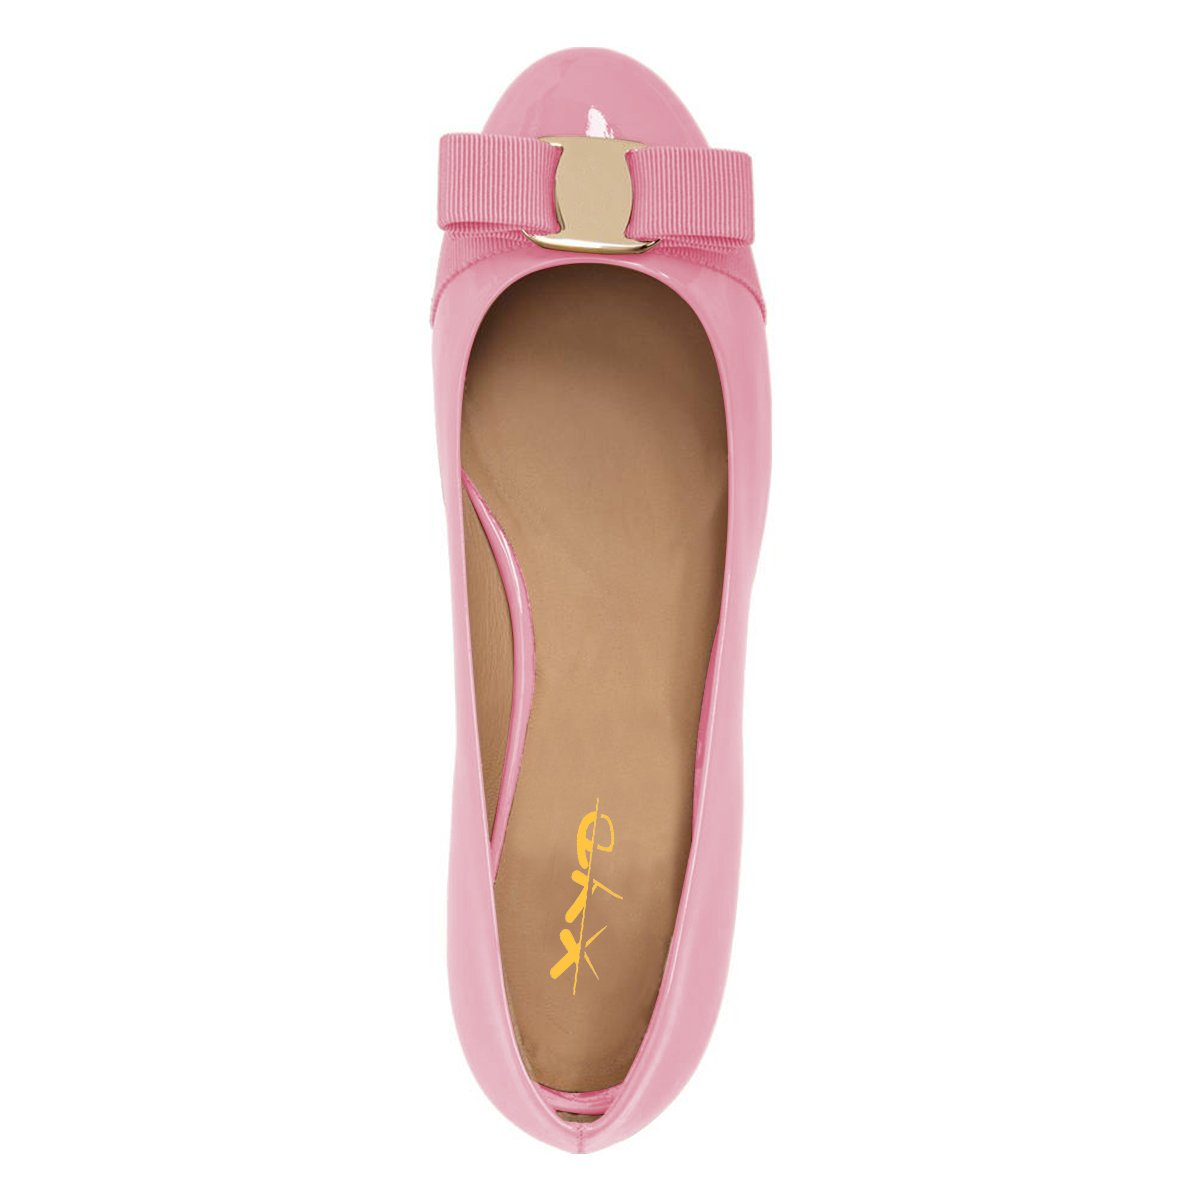 XYD Women Cute Bows Round Toe Ballet Flats Slip On Shoes Patent Basic Office Daily Shoes On B07CNL815L 10 B(M) US|Pink a2586c